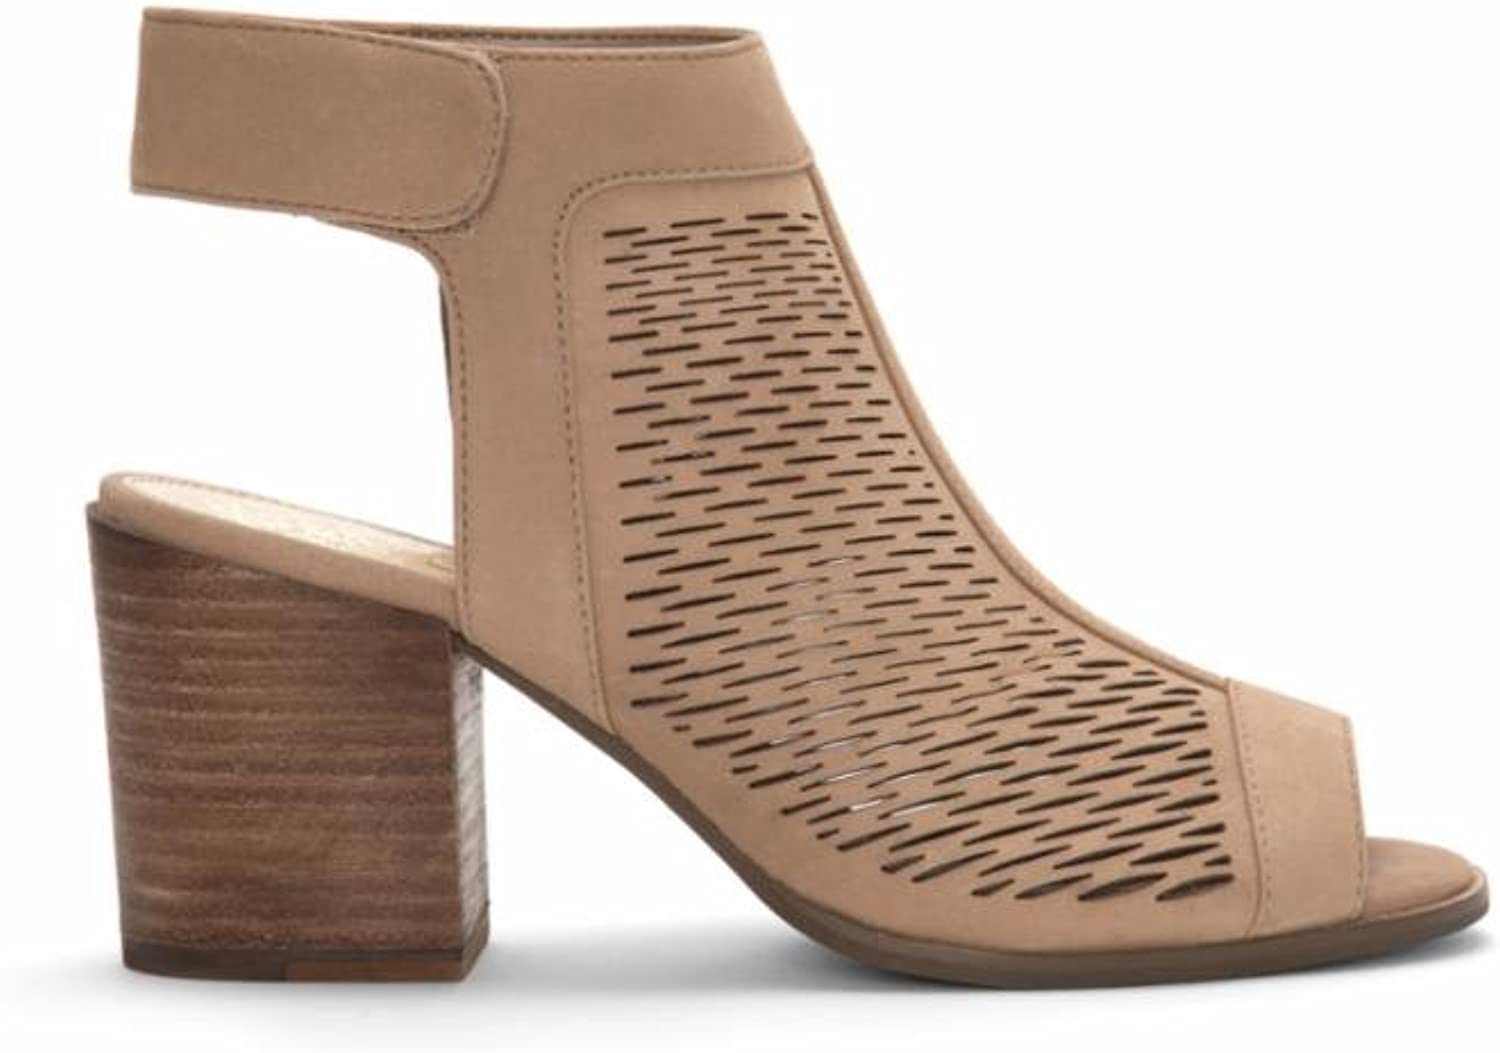 Vince Camuto Women's Lavette Perforated Peep Toe Bootie